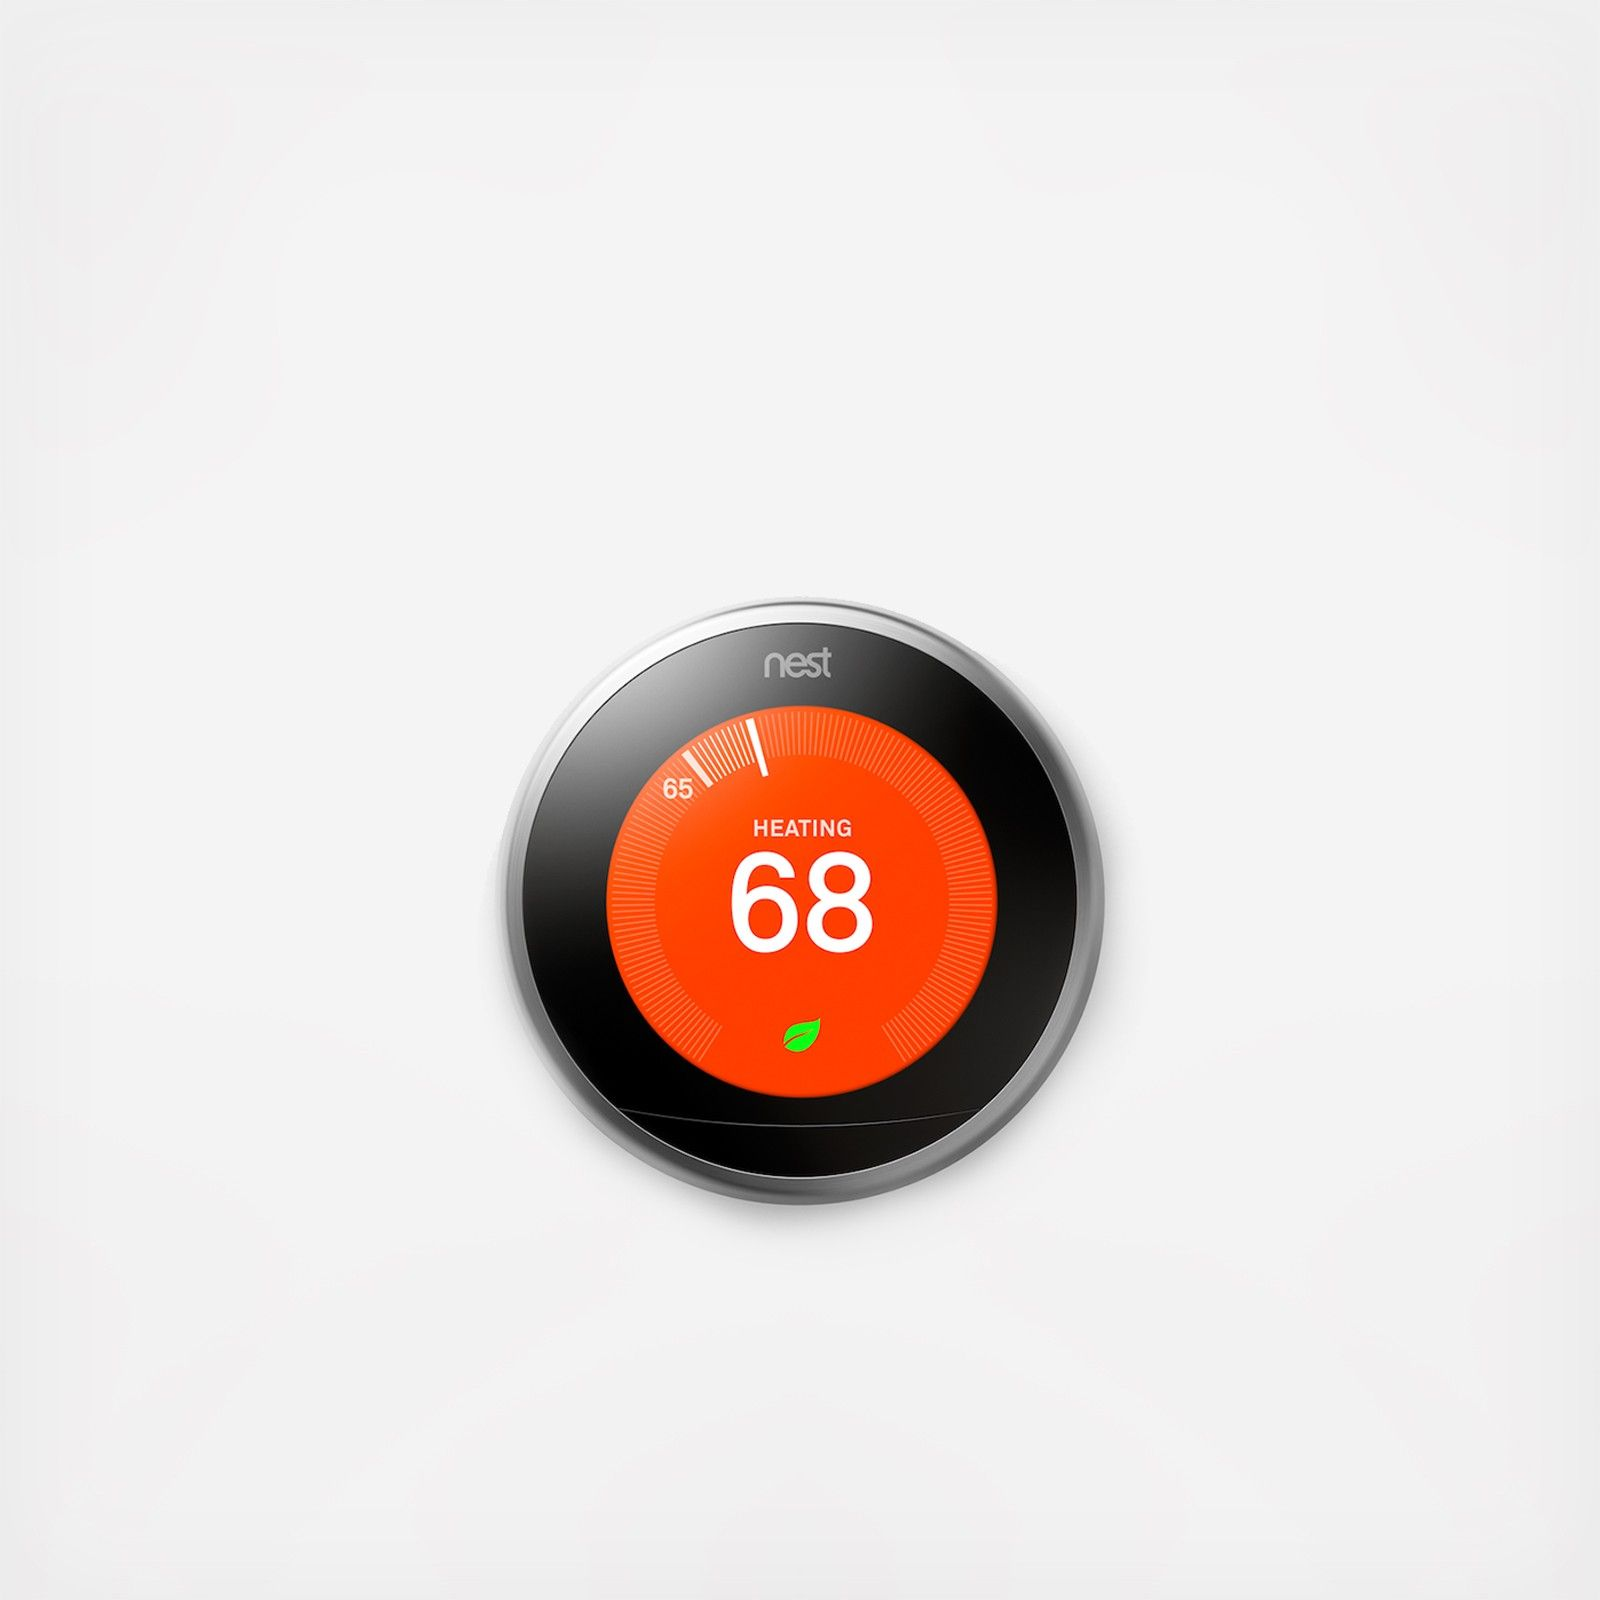 The 3rd generation Nest Learning Thermostat is more